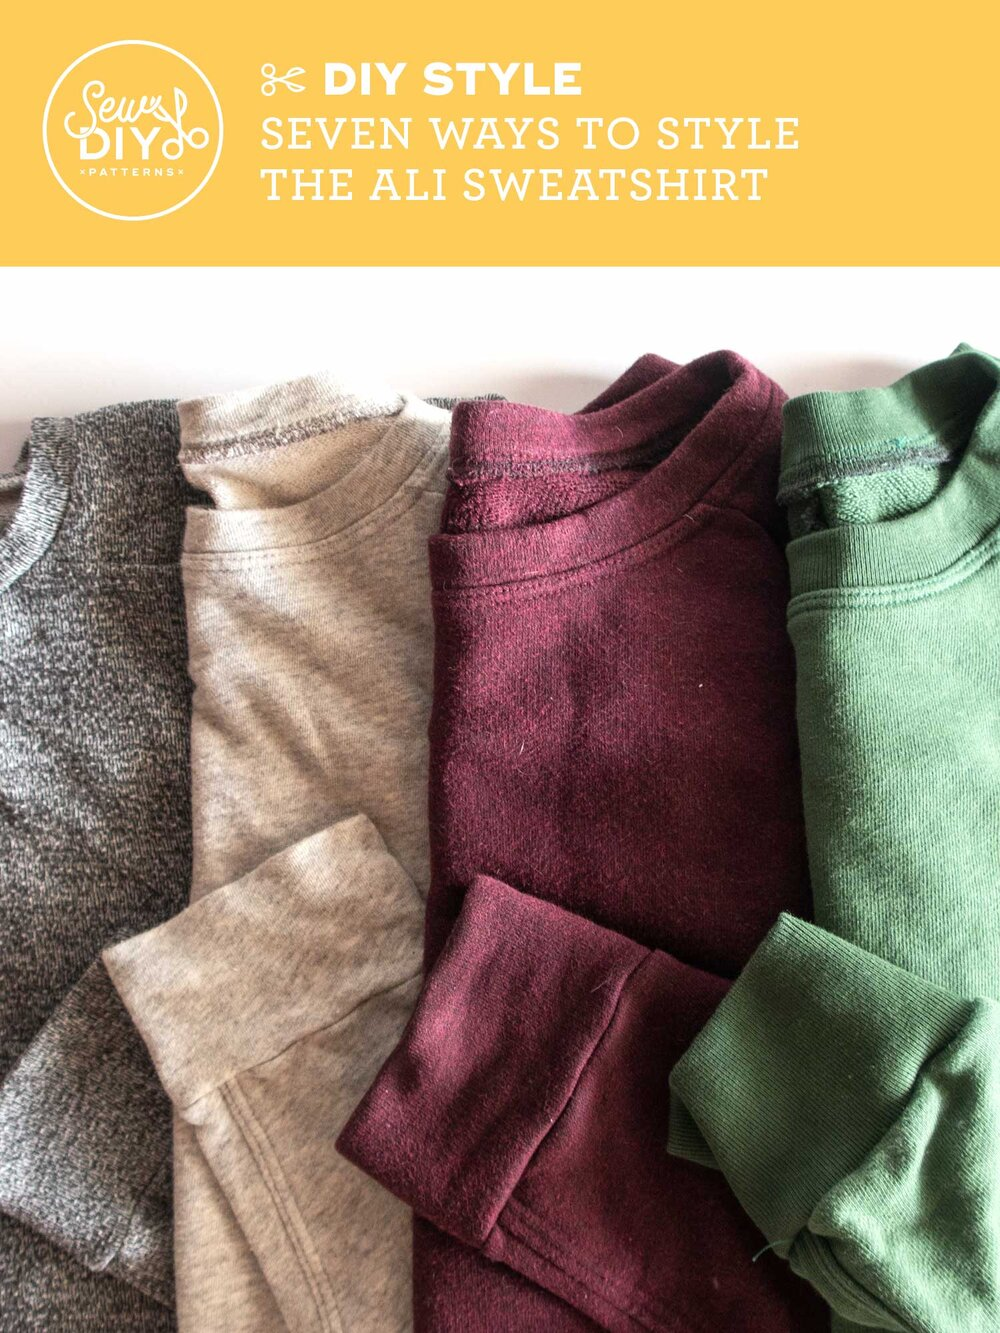 Seven ways to style the Ali Sweatshirt - Video from Sew DIY